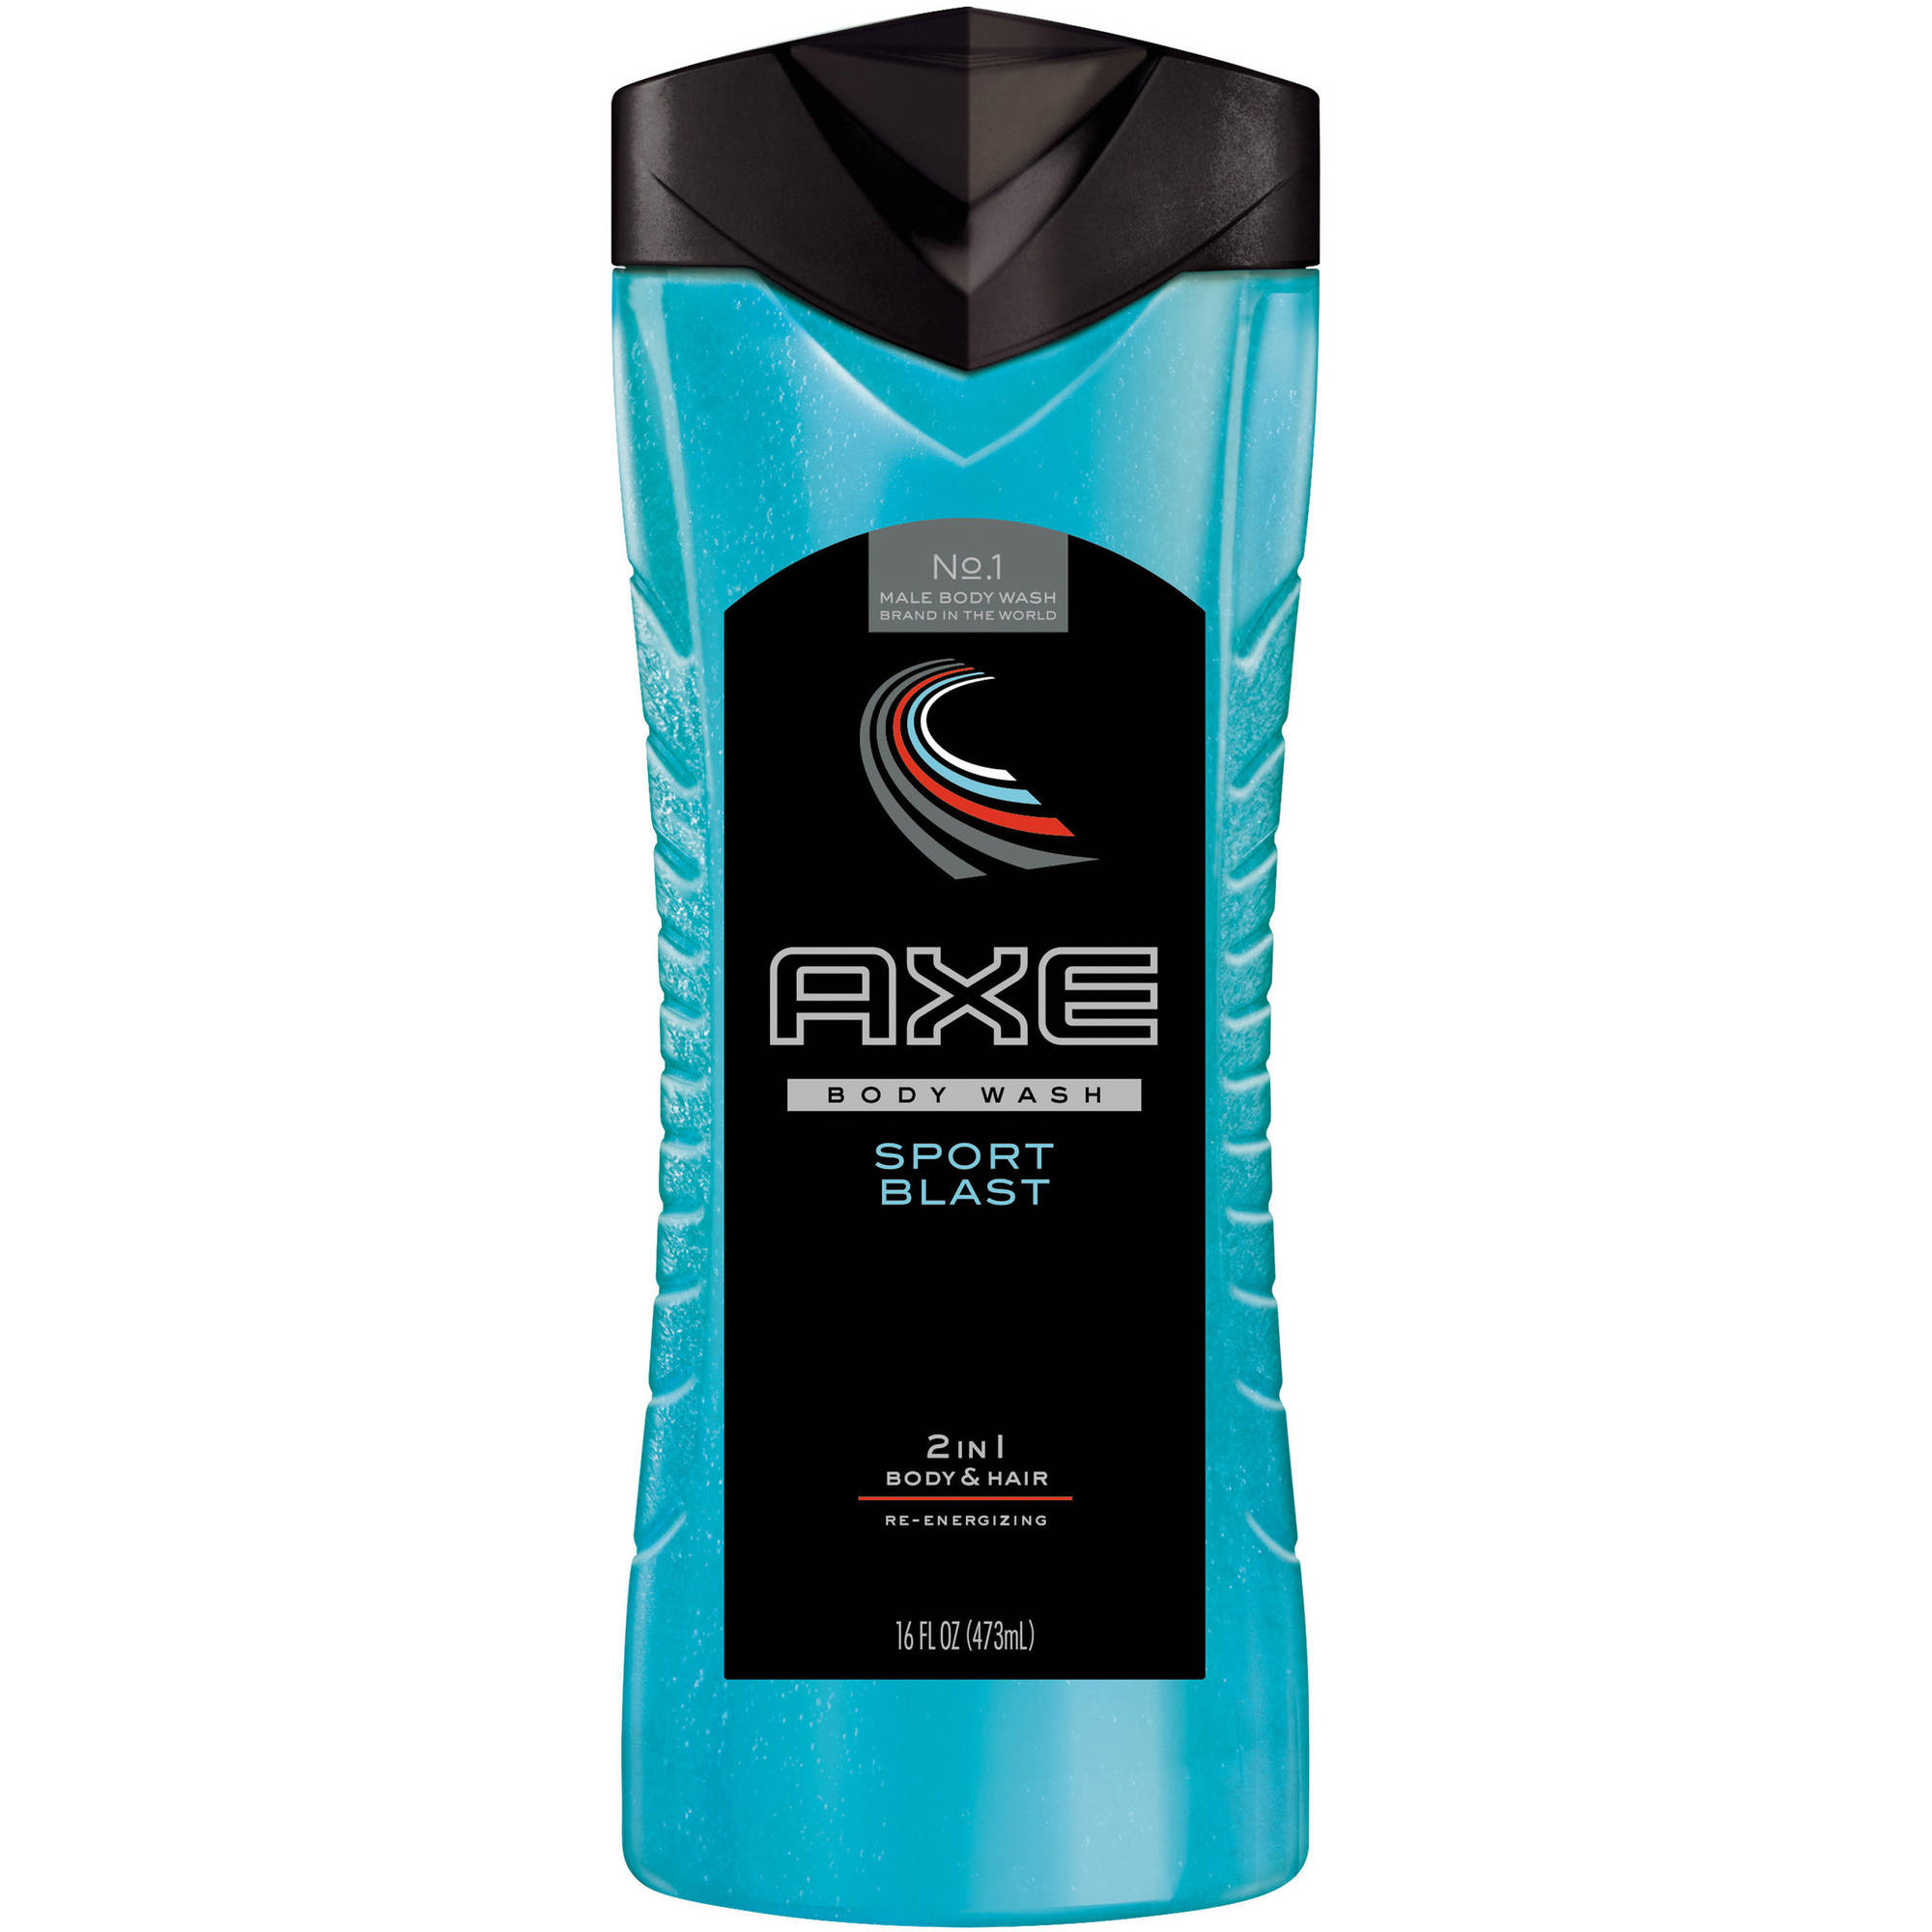 AXE Sport Blast 2 in 1 Body Wash and Shampoo, 16 oz